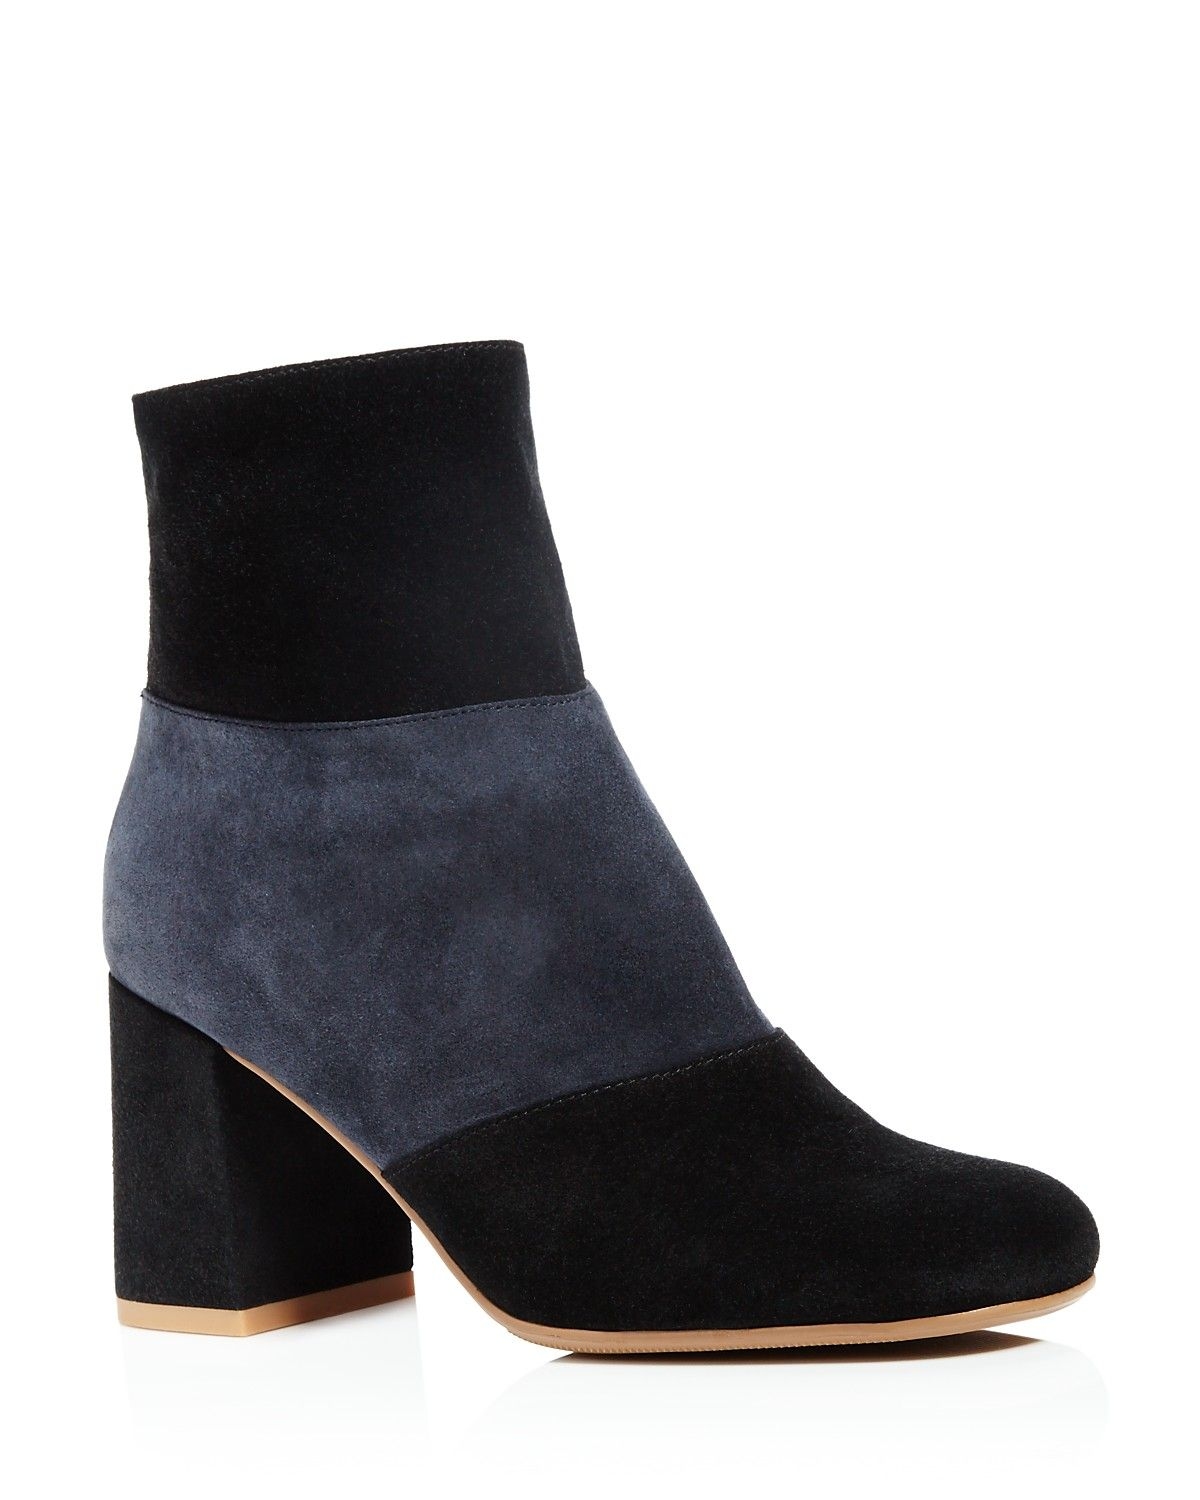 Rocker booties are trending, up +180% YoY. Try these top saved suede booties for a David Bowie-meets-city-girl vibe.